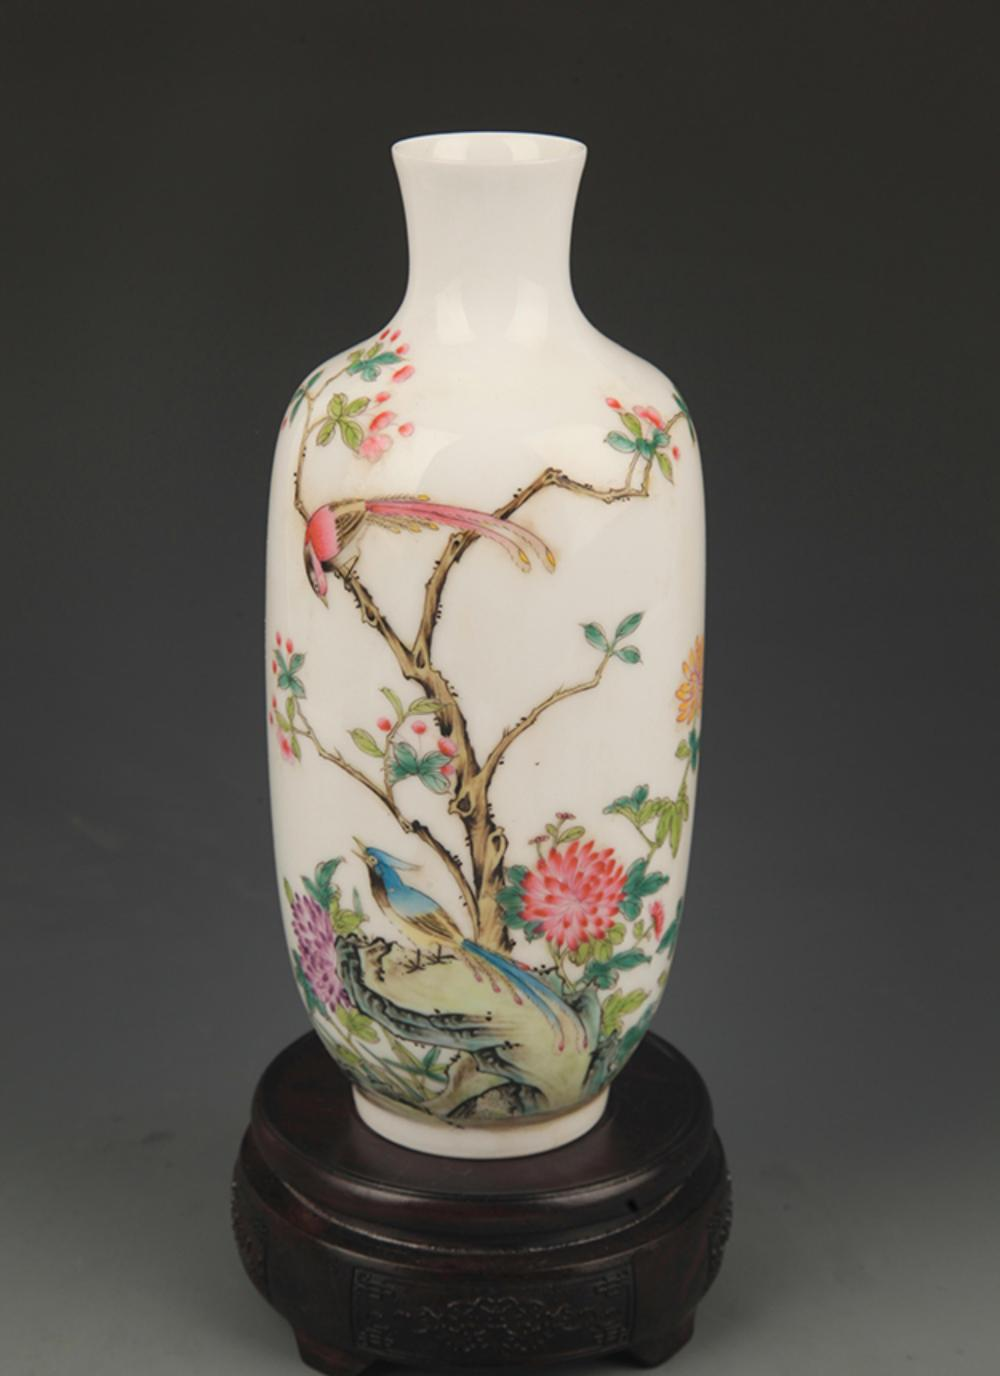 A RARE FAMILLE ROSE PEONY AND CHICKEN PATTERN WOODEN CLUB VASE